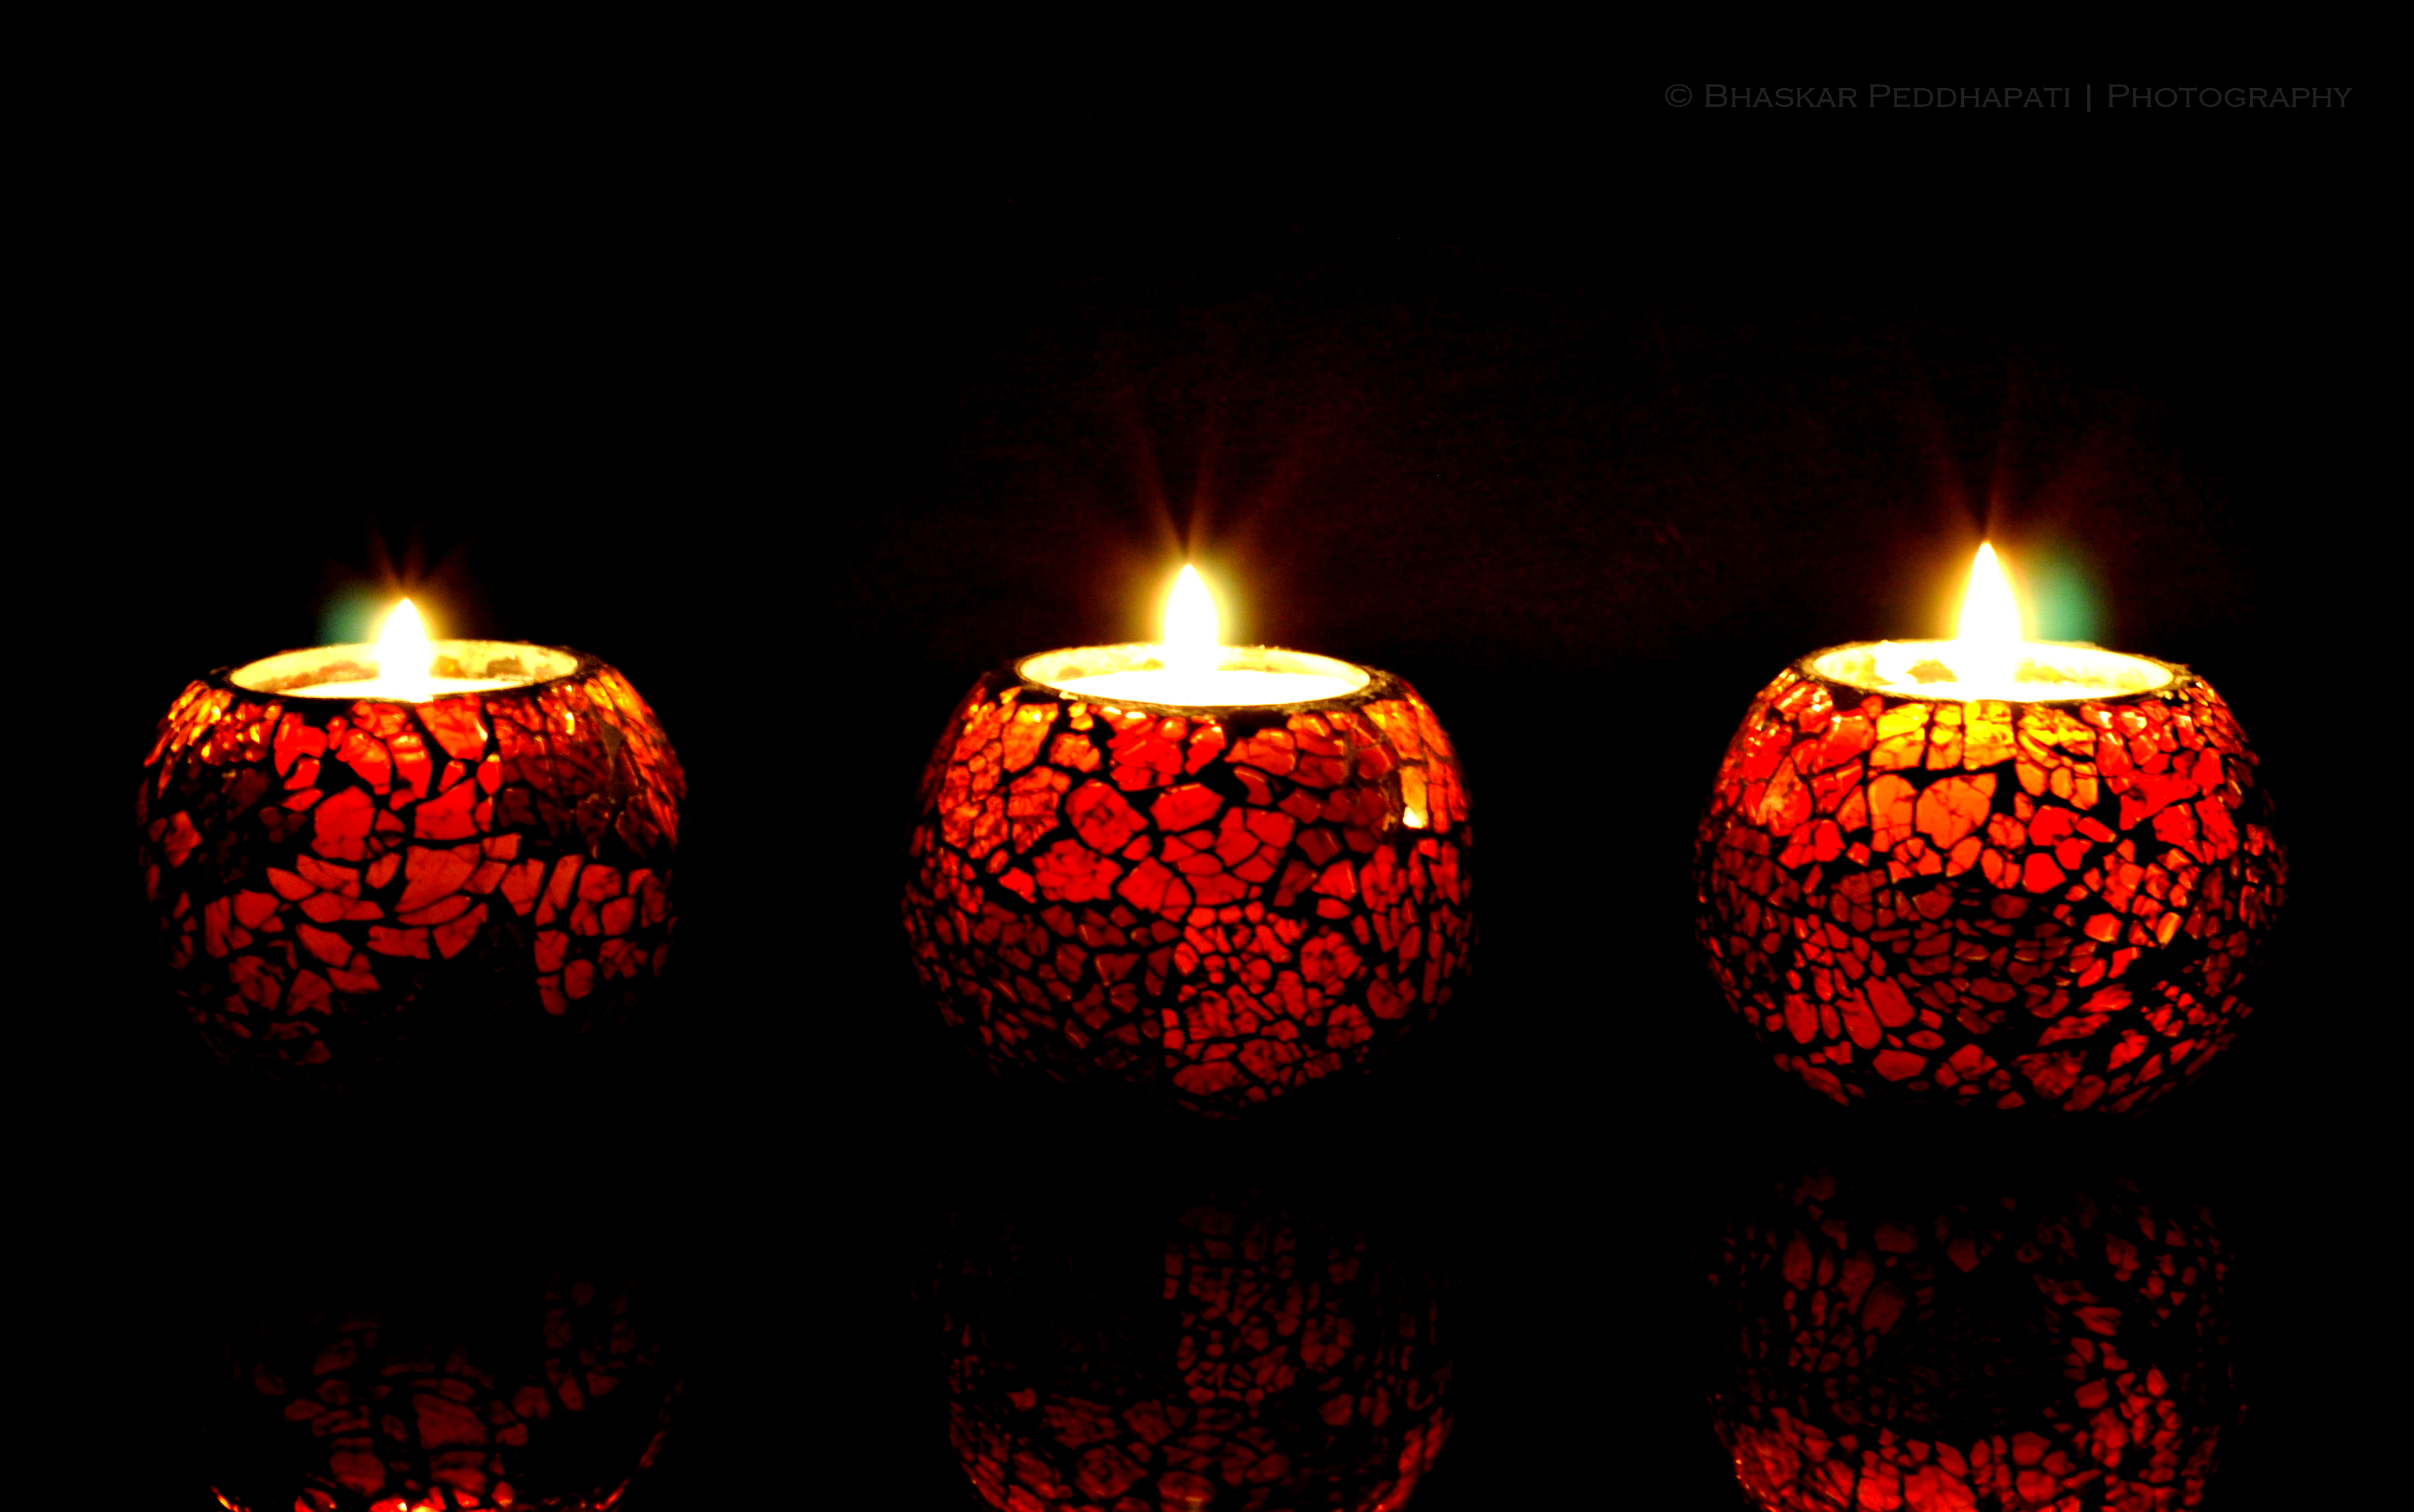 Night lamps india - As We Approach Diwali The Festival Of Lights There Are All Sorts Of Traditions And Festivities Happening Within A Multitude Of Cultures